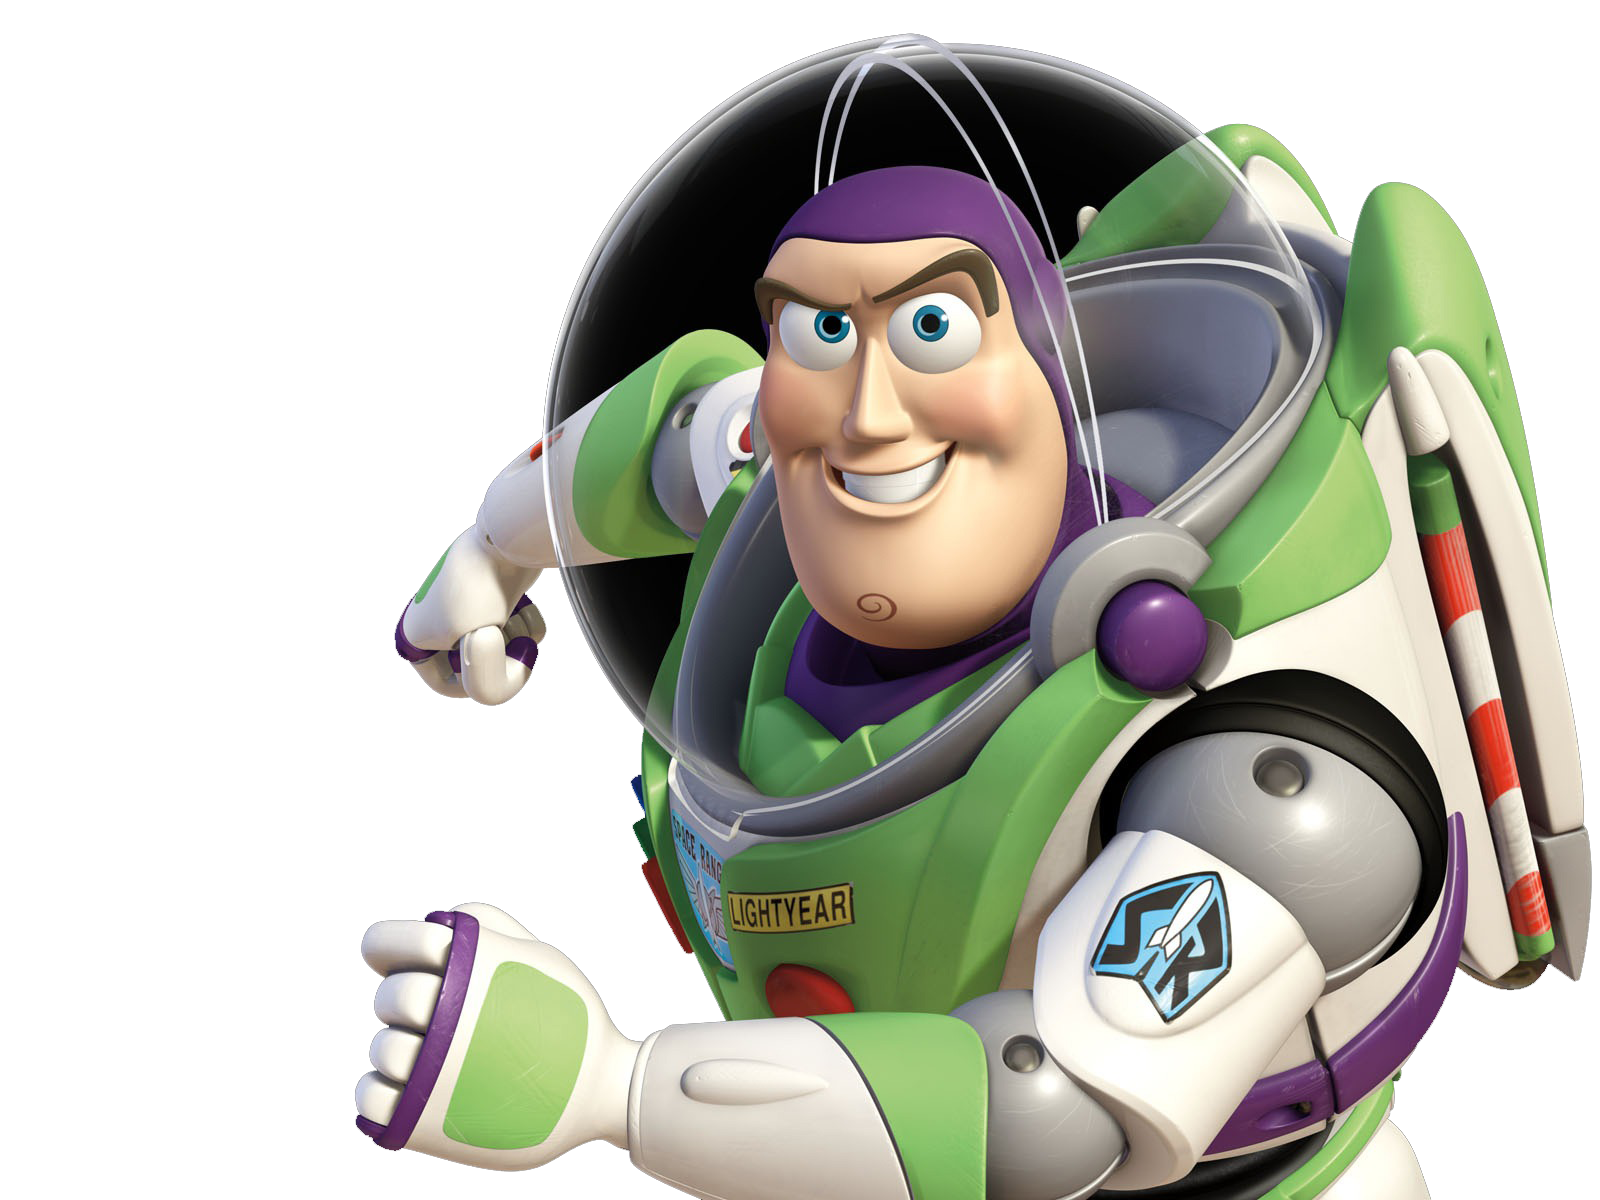 Buzz transparent bus. Toy story png file